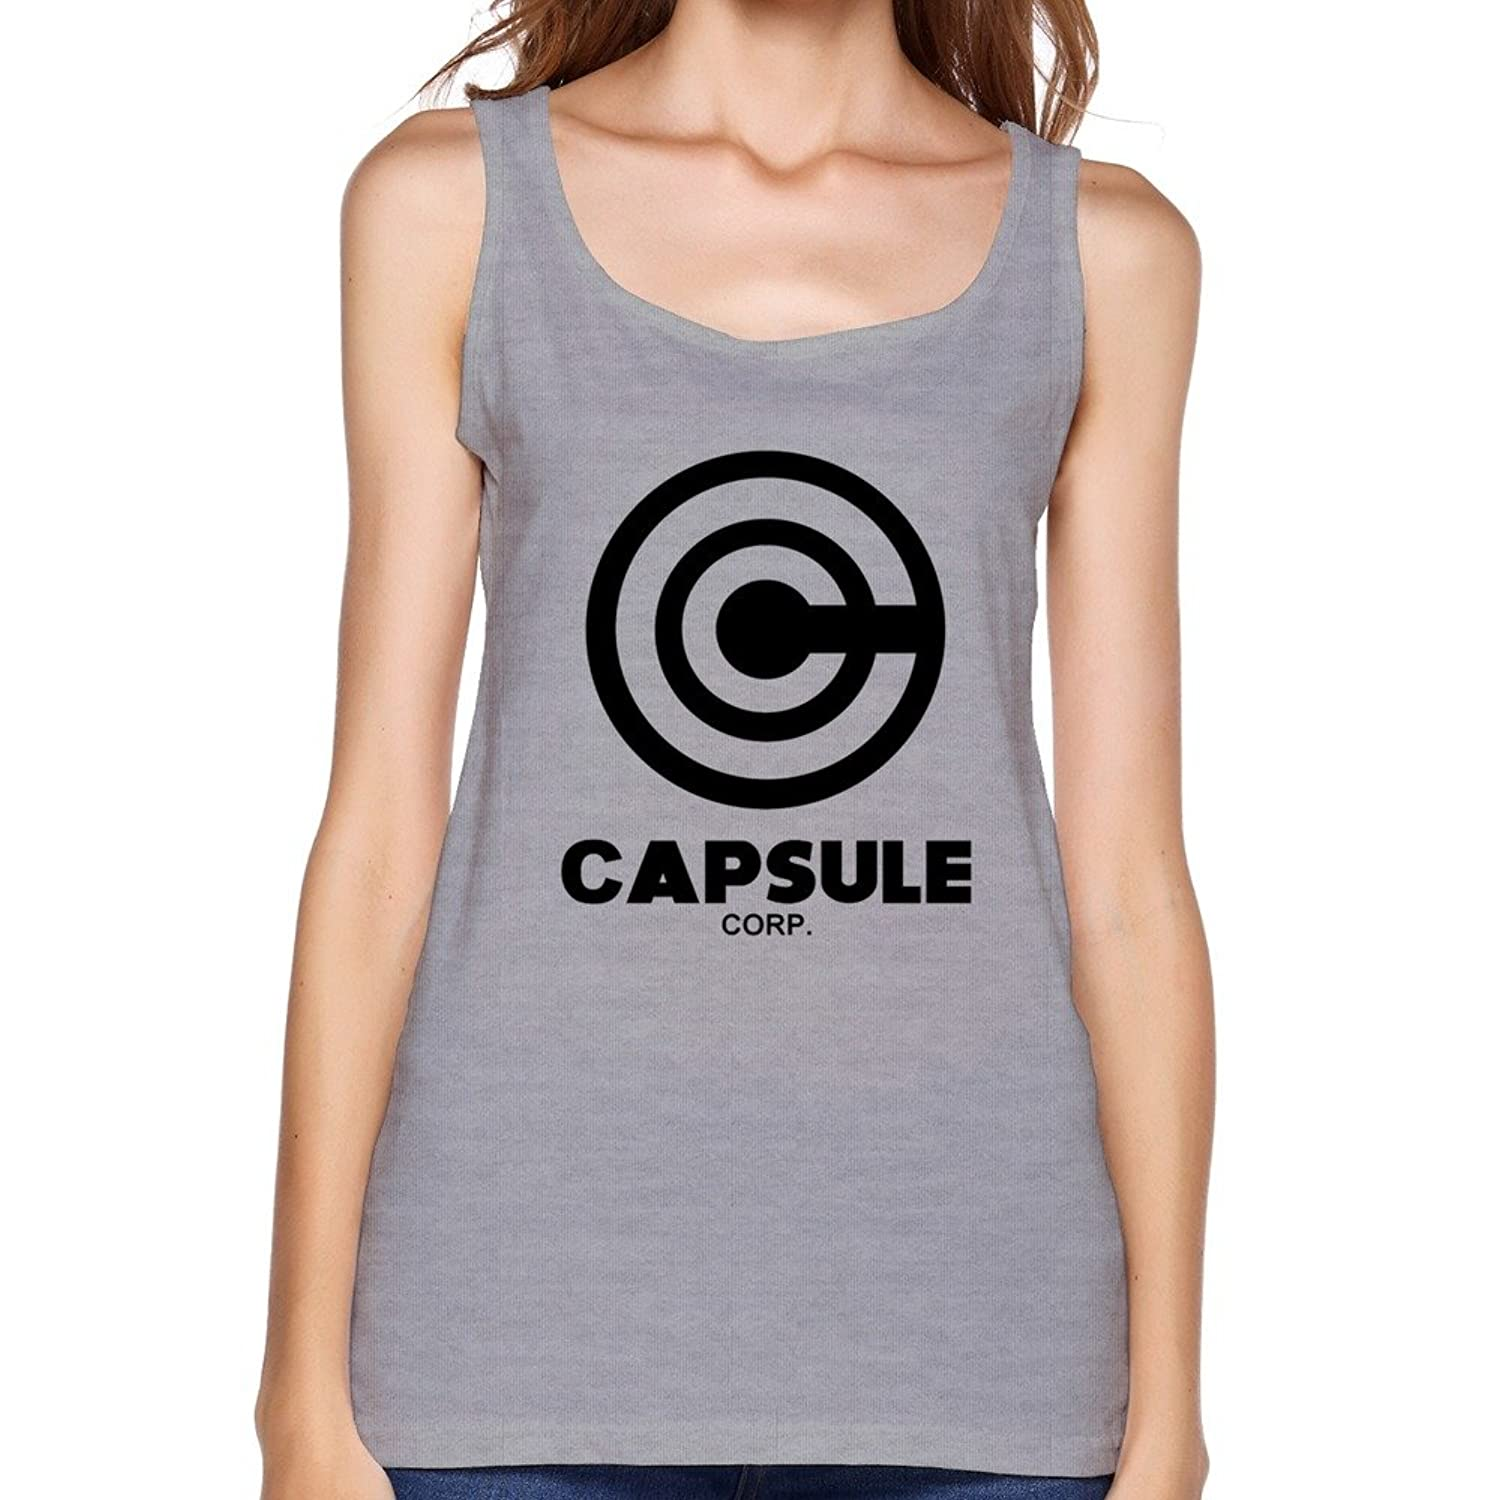 Capsule Corps Shoes z Capsule Corp Tank Top